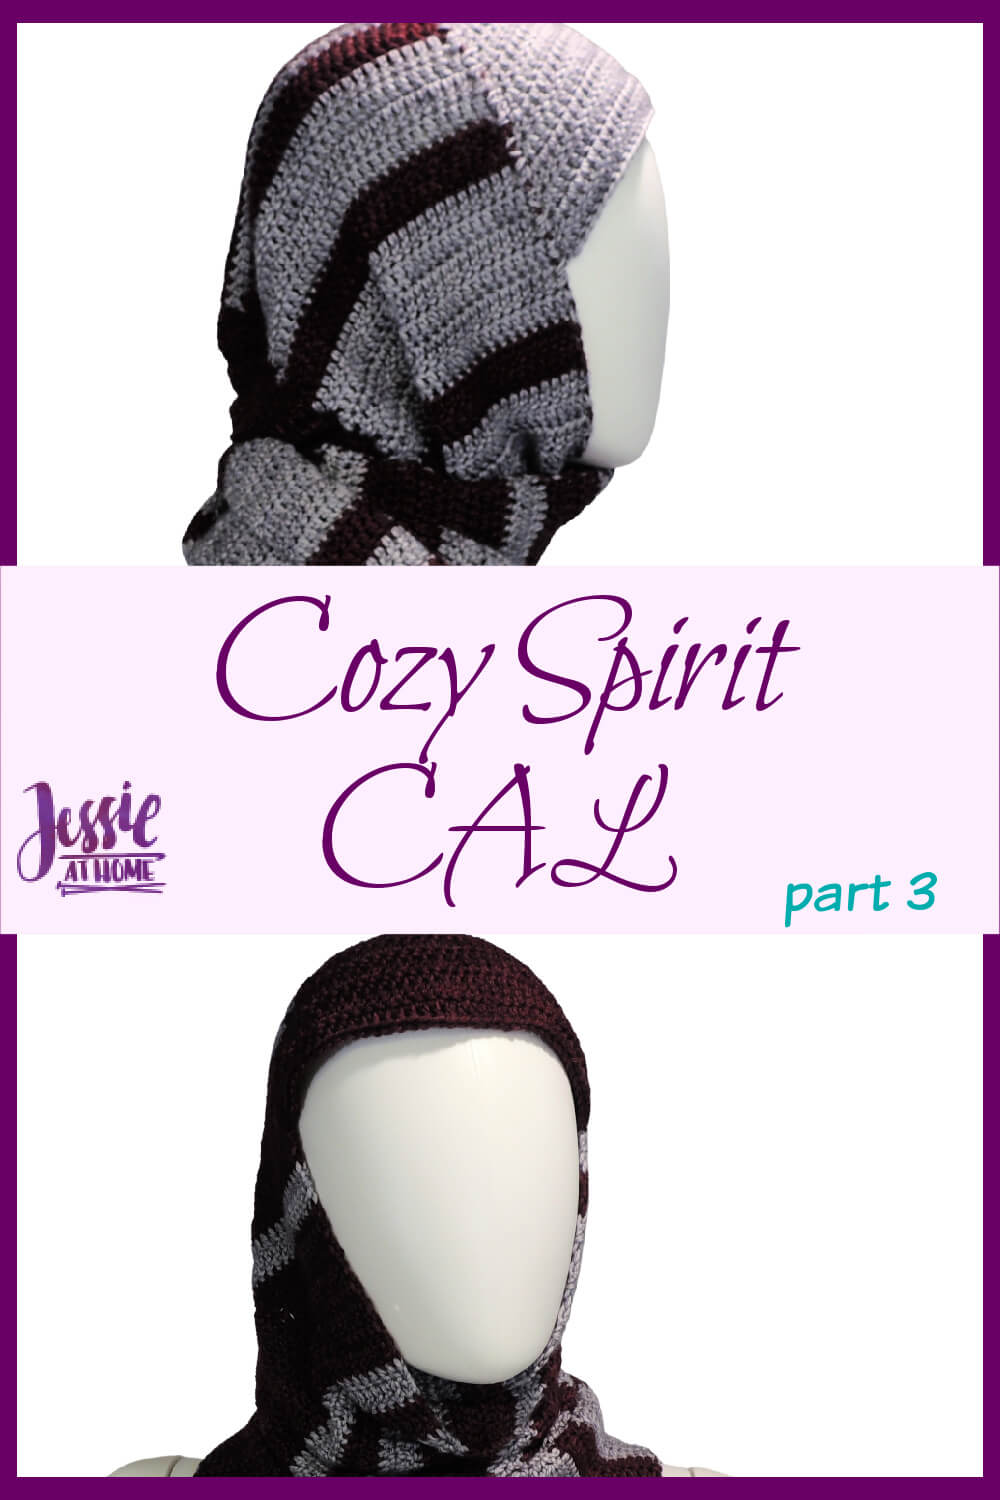 Cozy Spirit Scoody! - Time to finish and get to school